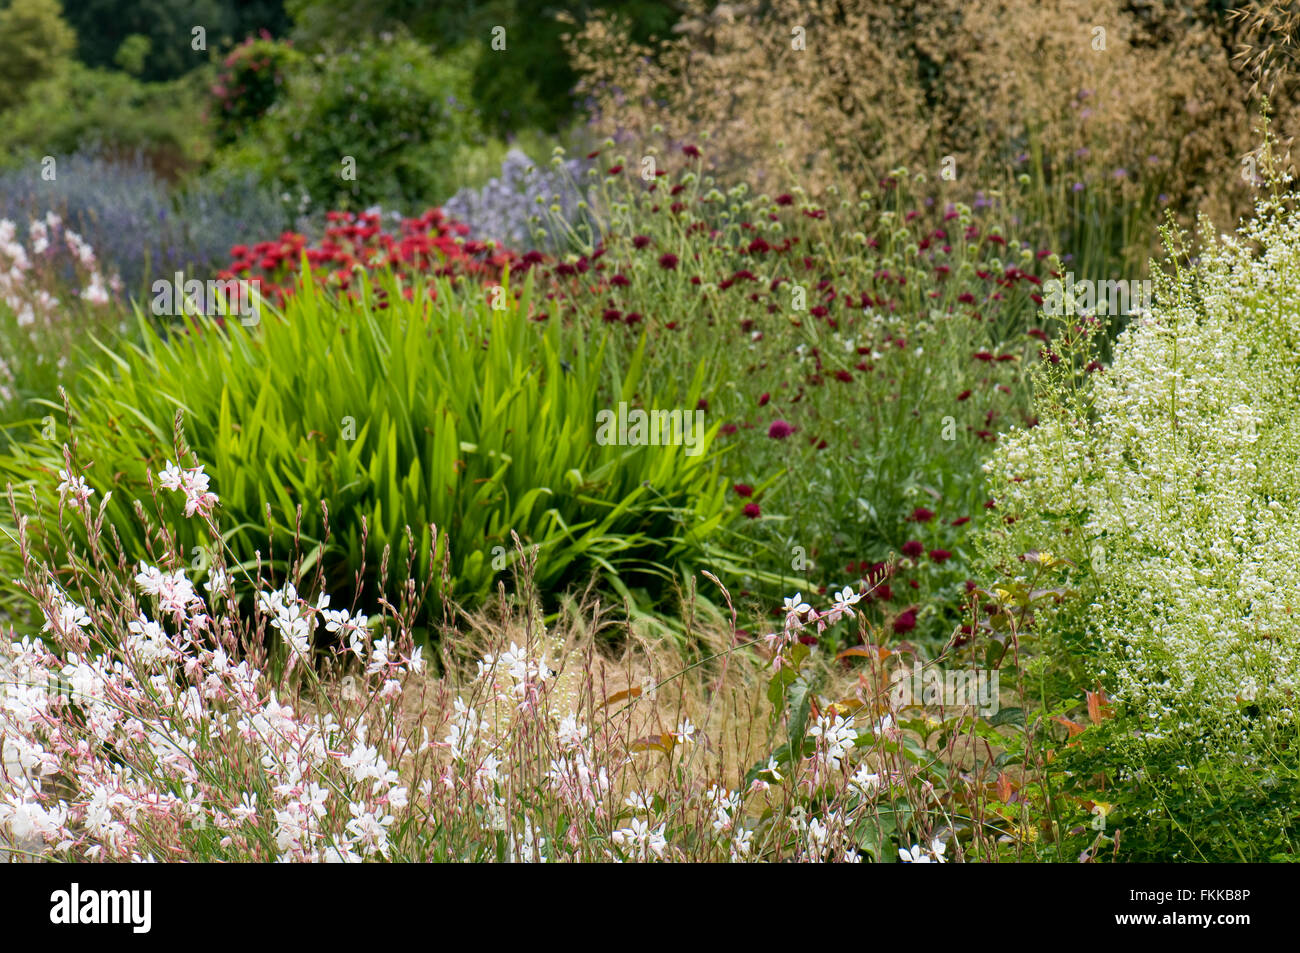 Mixe herbaceous border including Gaura lindheimeri 'Whirling Butterflies', Thalictrum delavayi 'Album', - Stock Image